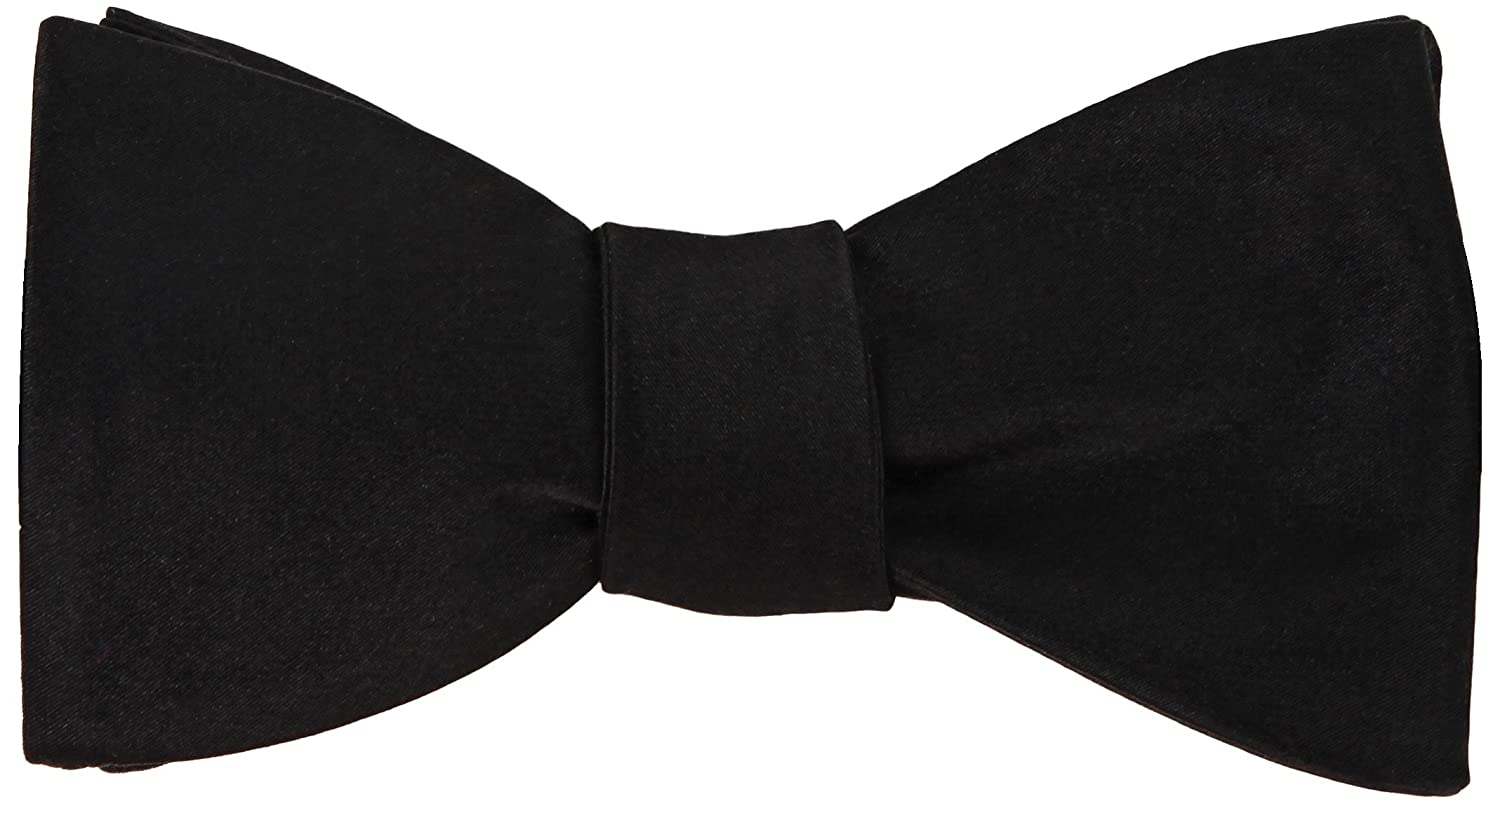 Black 100/% Woven Silk Bow Tie Self-Tie Butterfly Wedding Collection Gift Boxed